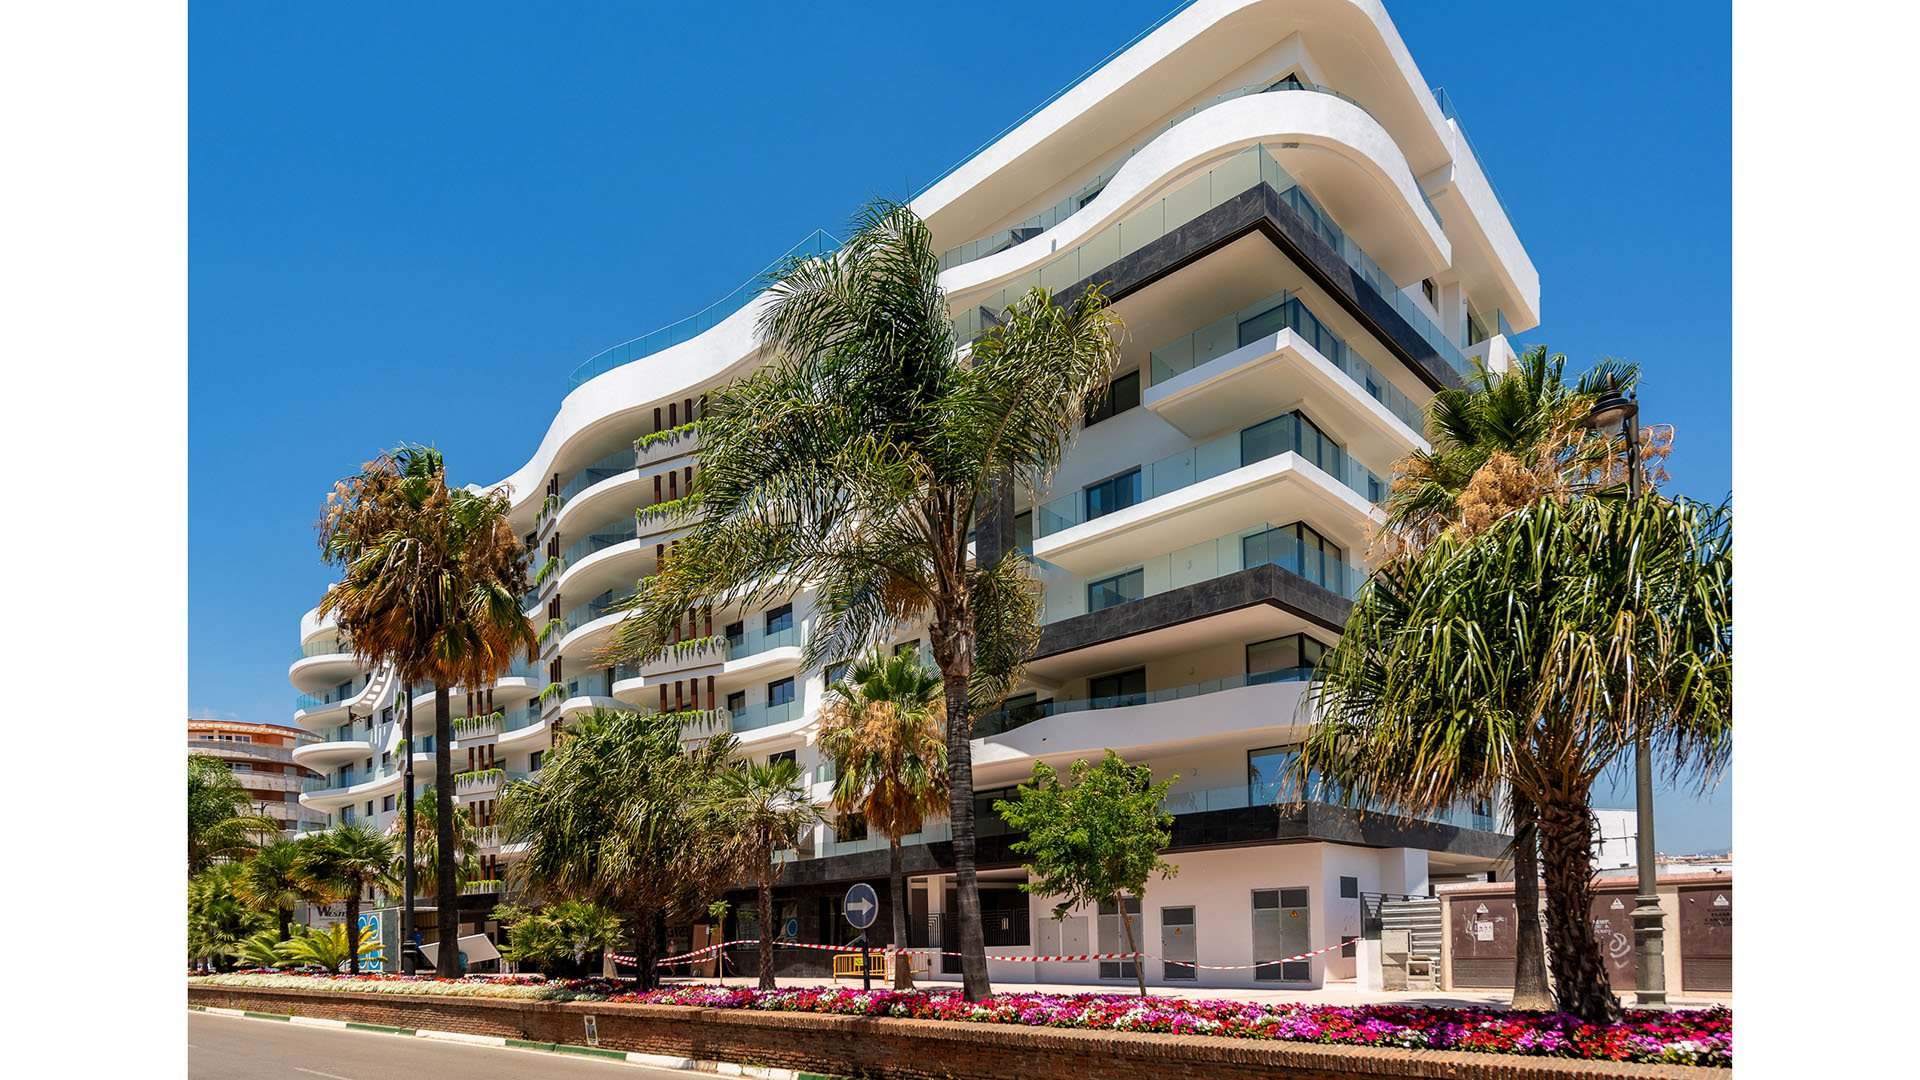 Residencial Infinity: Luxury apartments close to the beach in the heart of Estepona